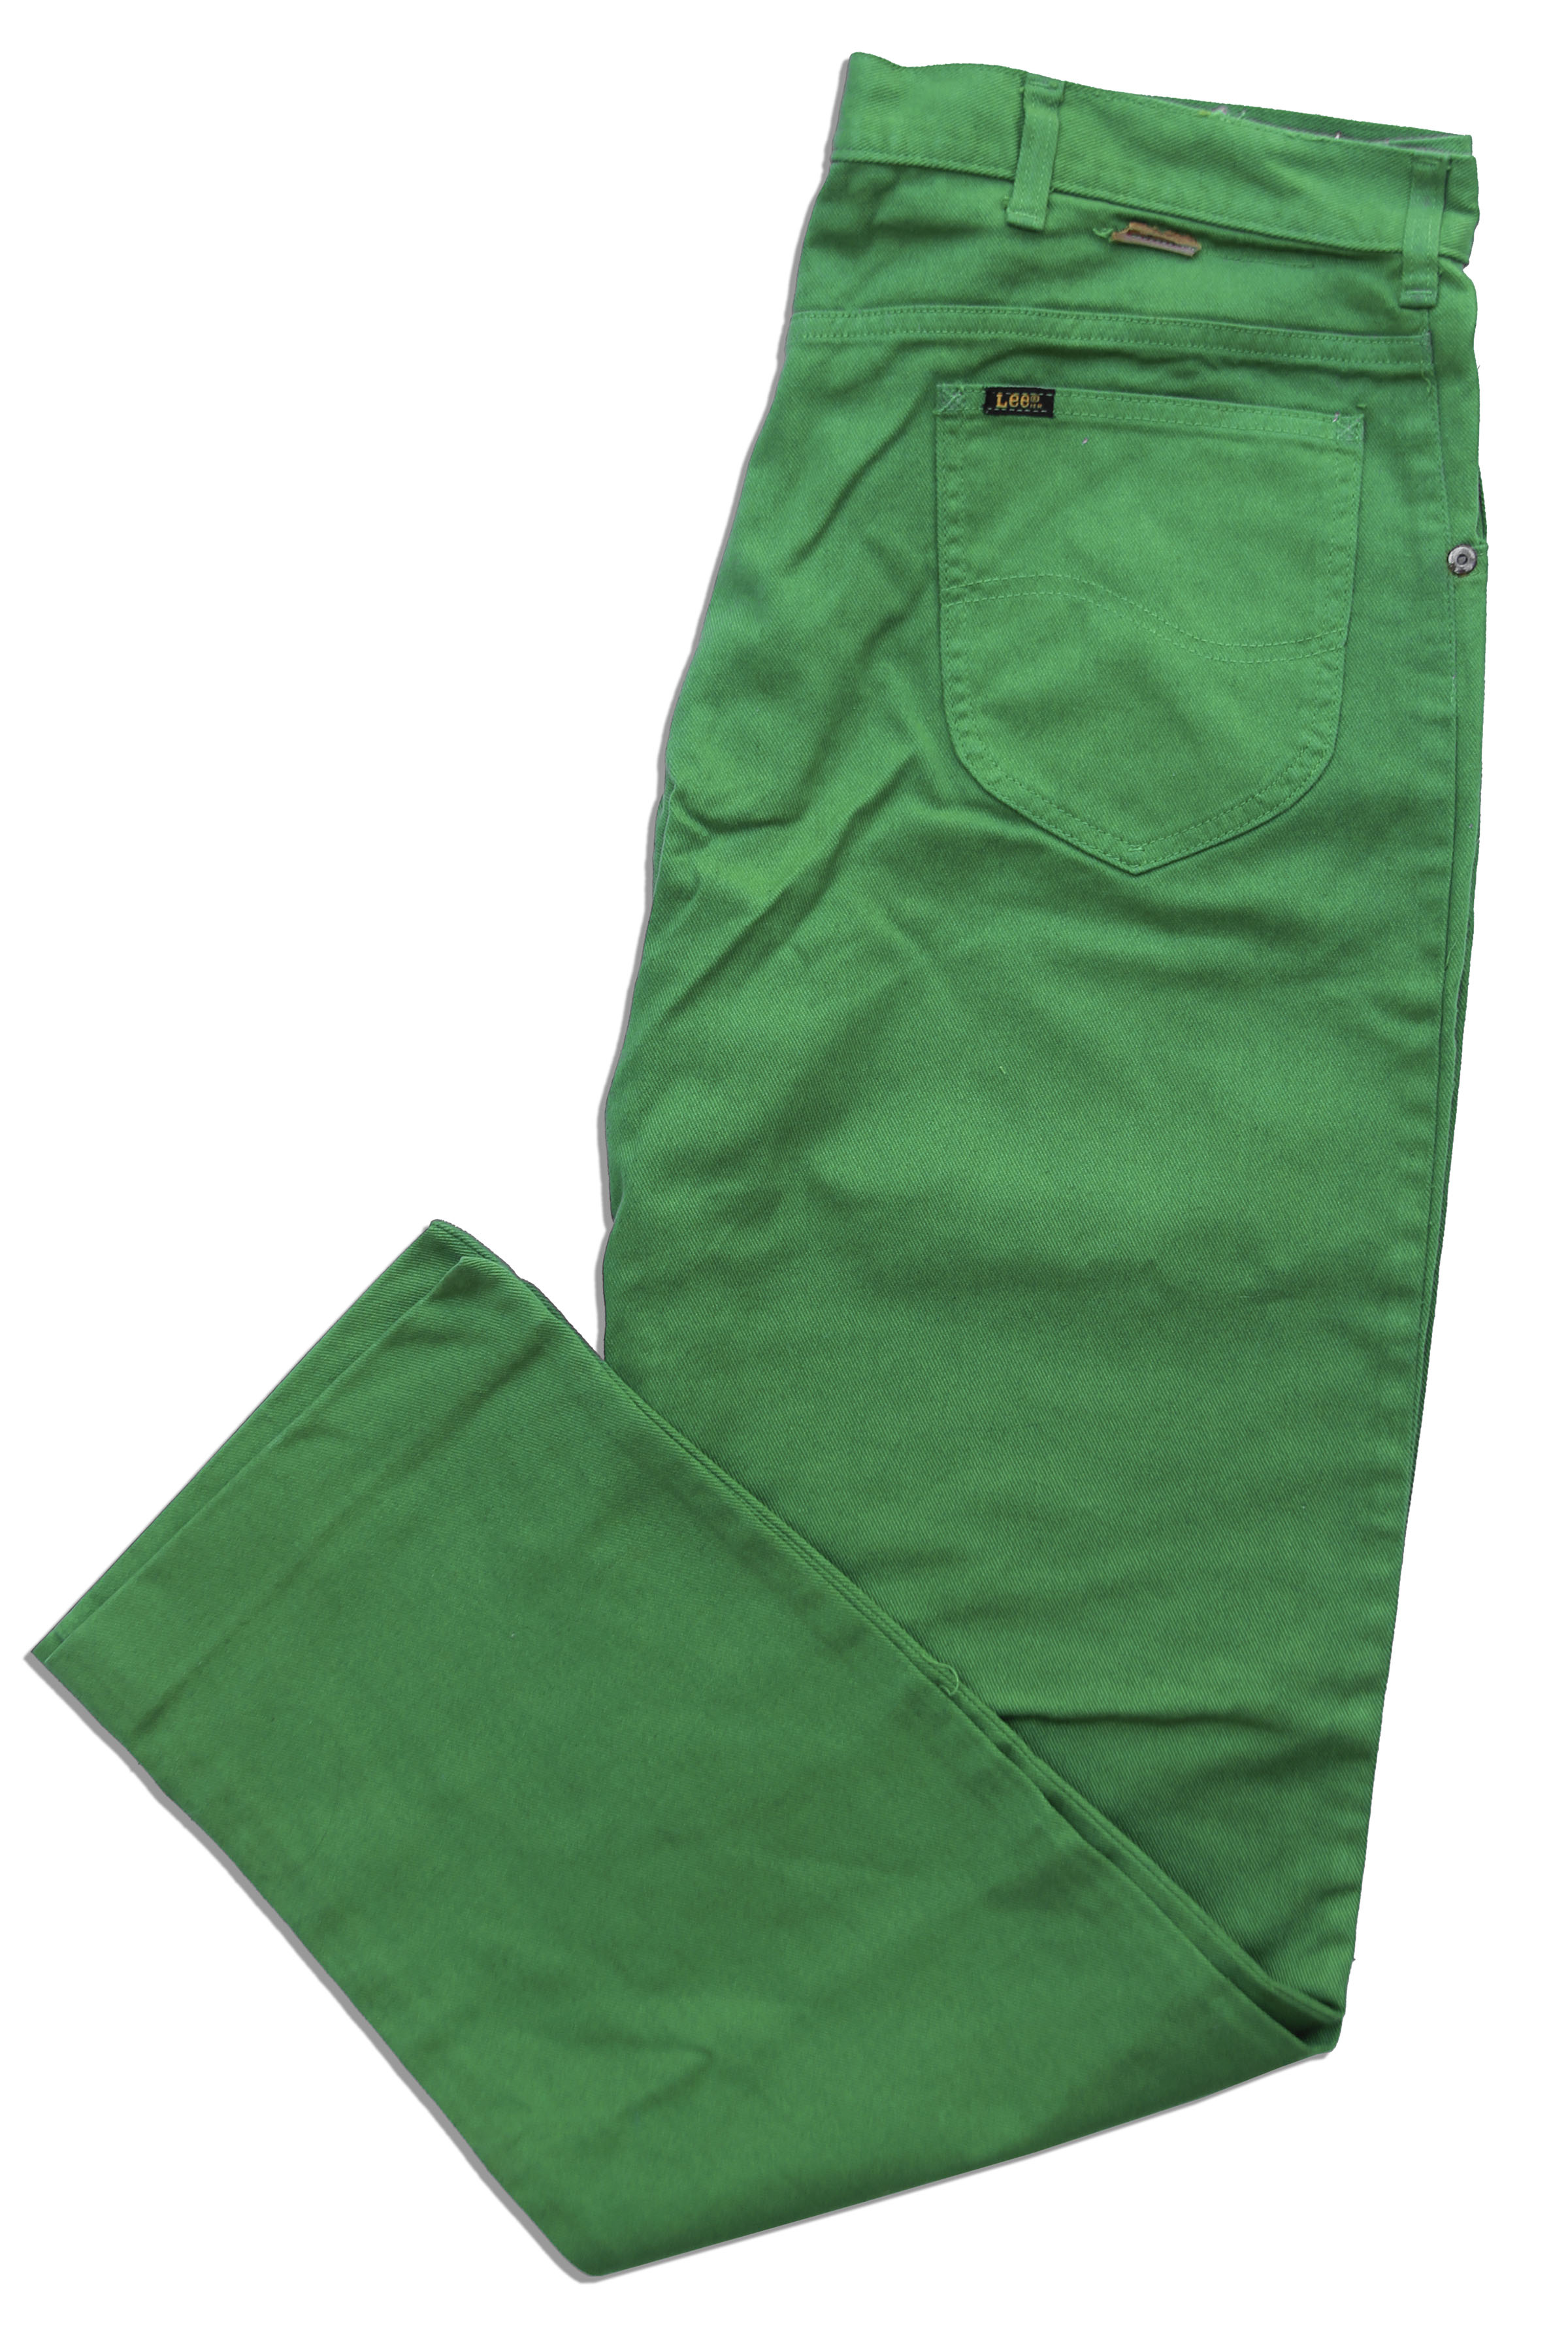 Lot Detail - Hugh Brannum's Green Jeans for His Costume as Mr ...